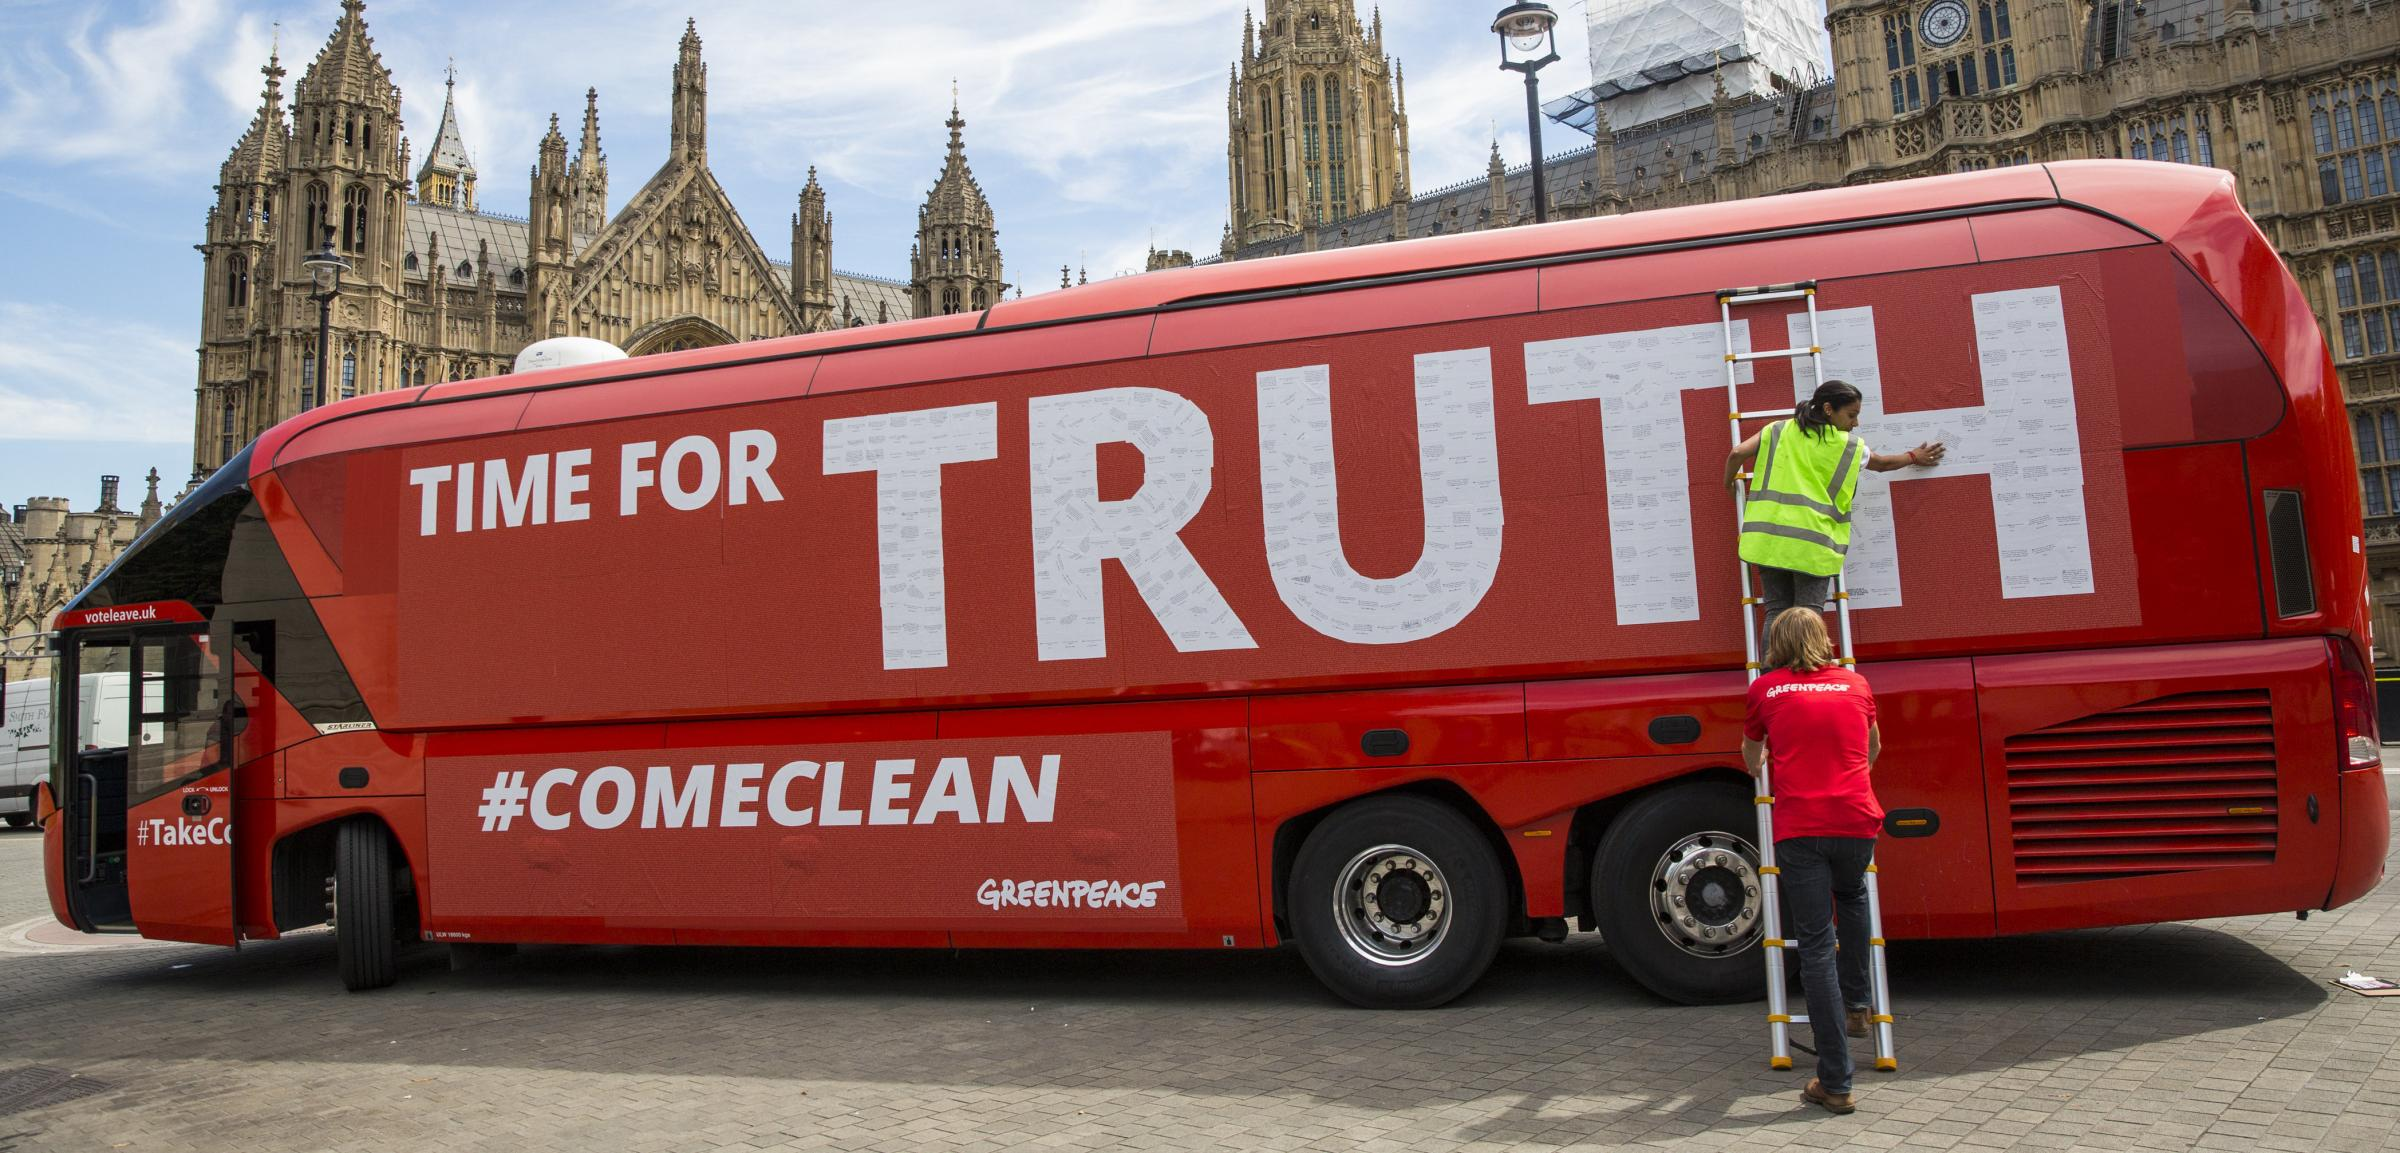 The famous Leave campaign bus was taken over by Greenpeace